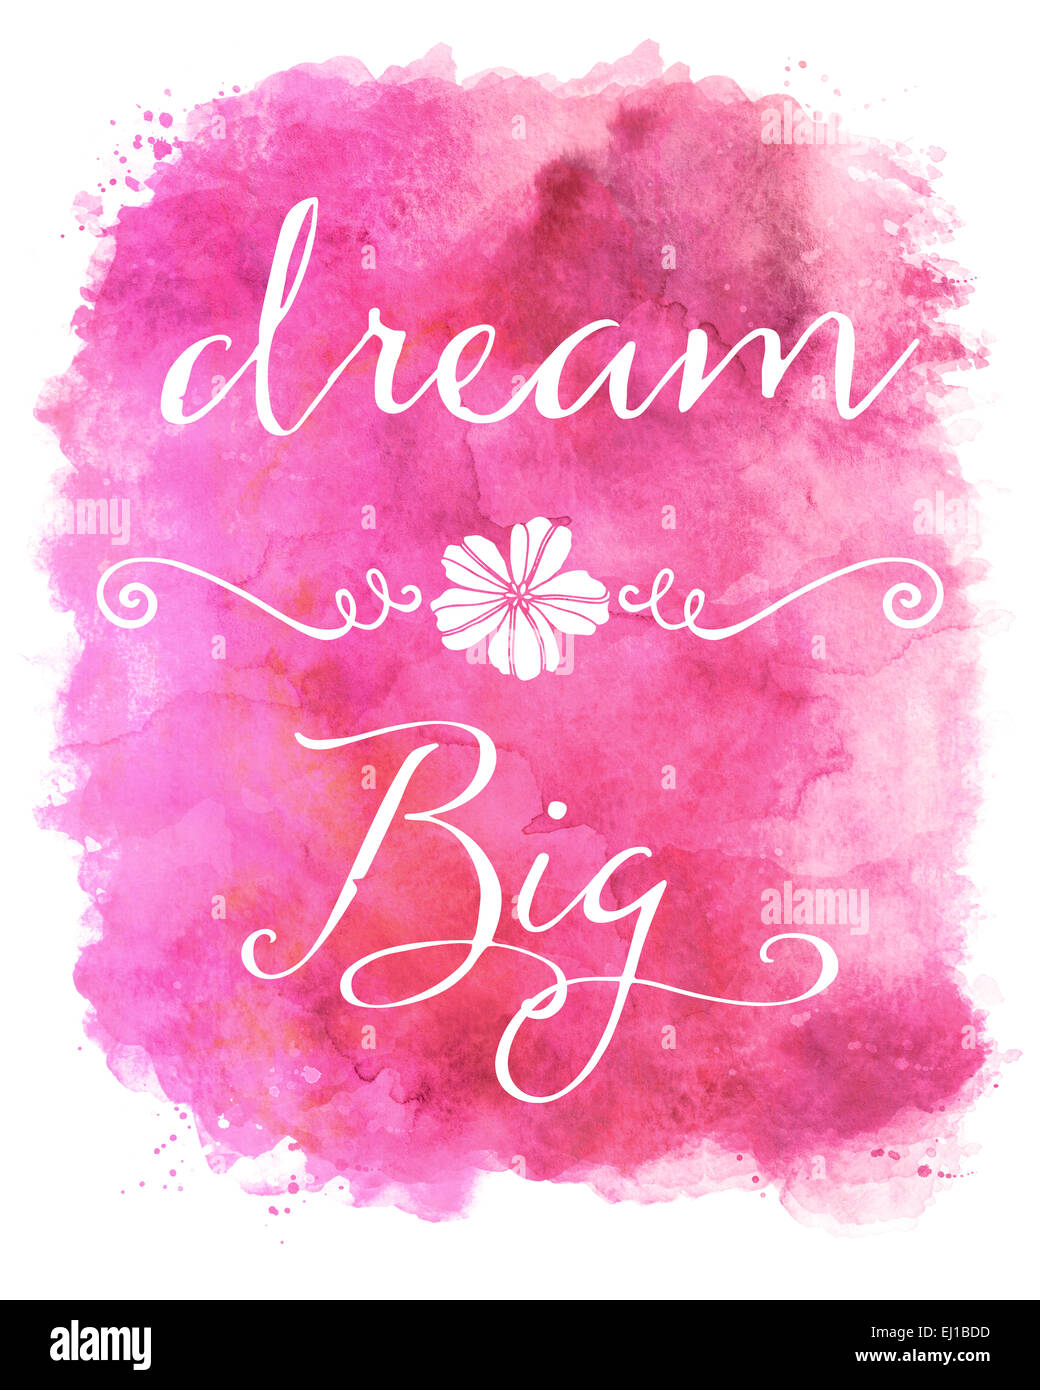 Dream Big Pink Watercolor Inspirational Quote Stock Photo ...